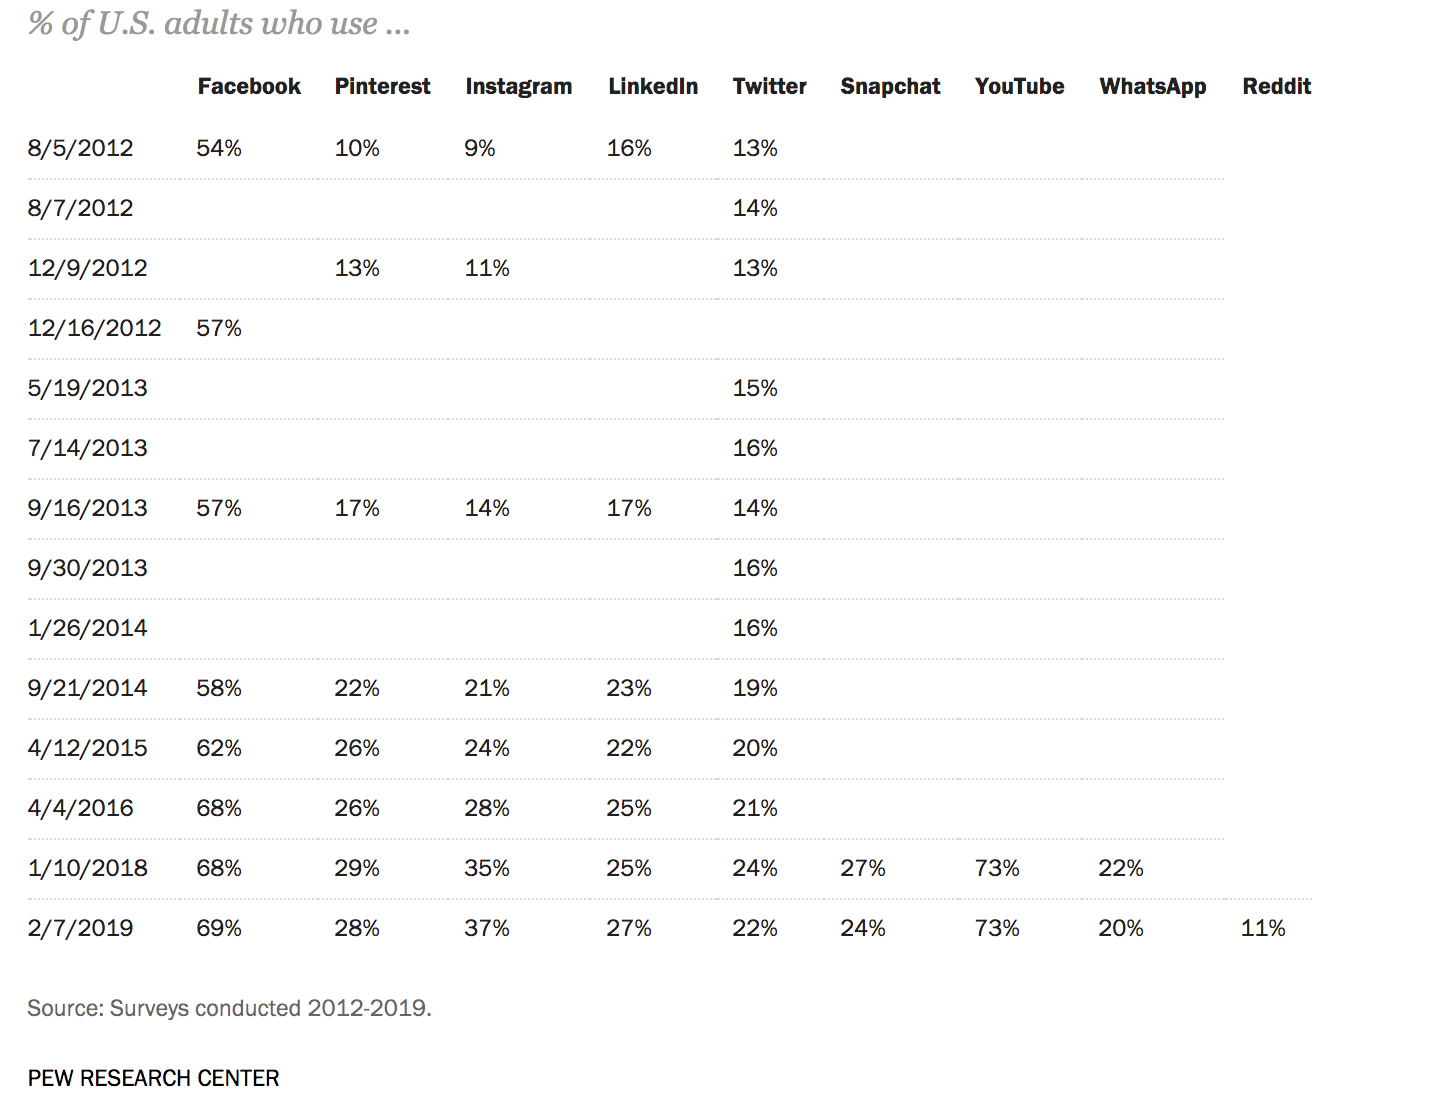 where do different generations spend their time online?